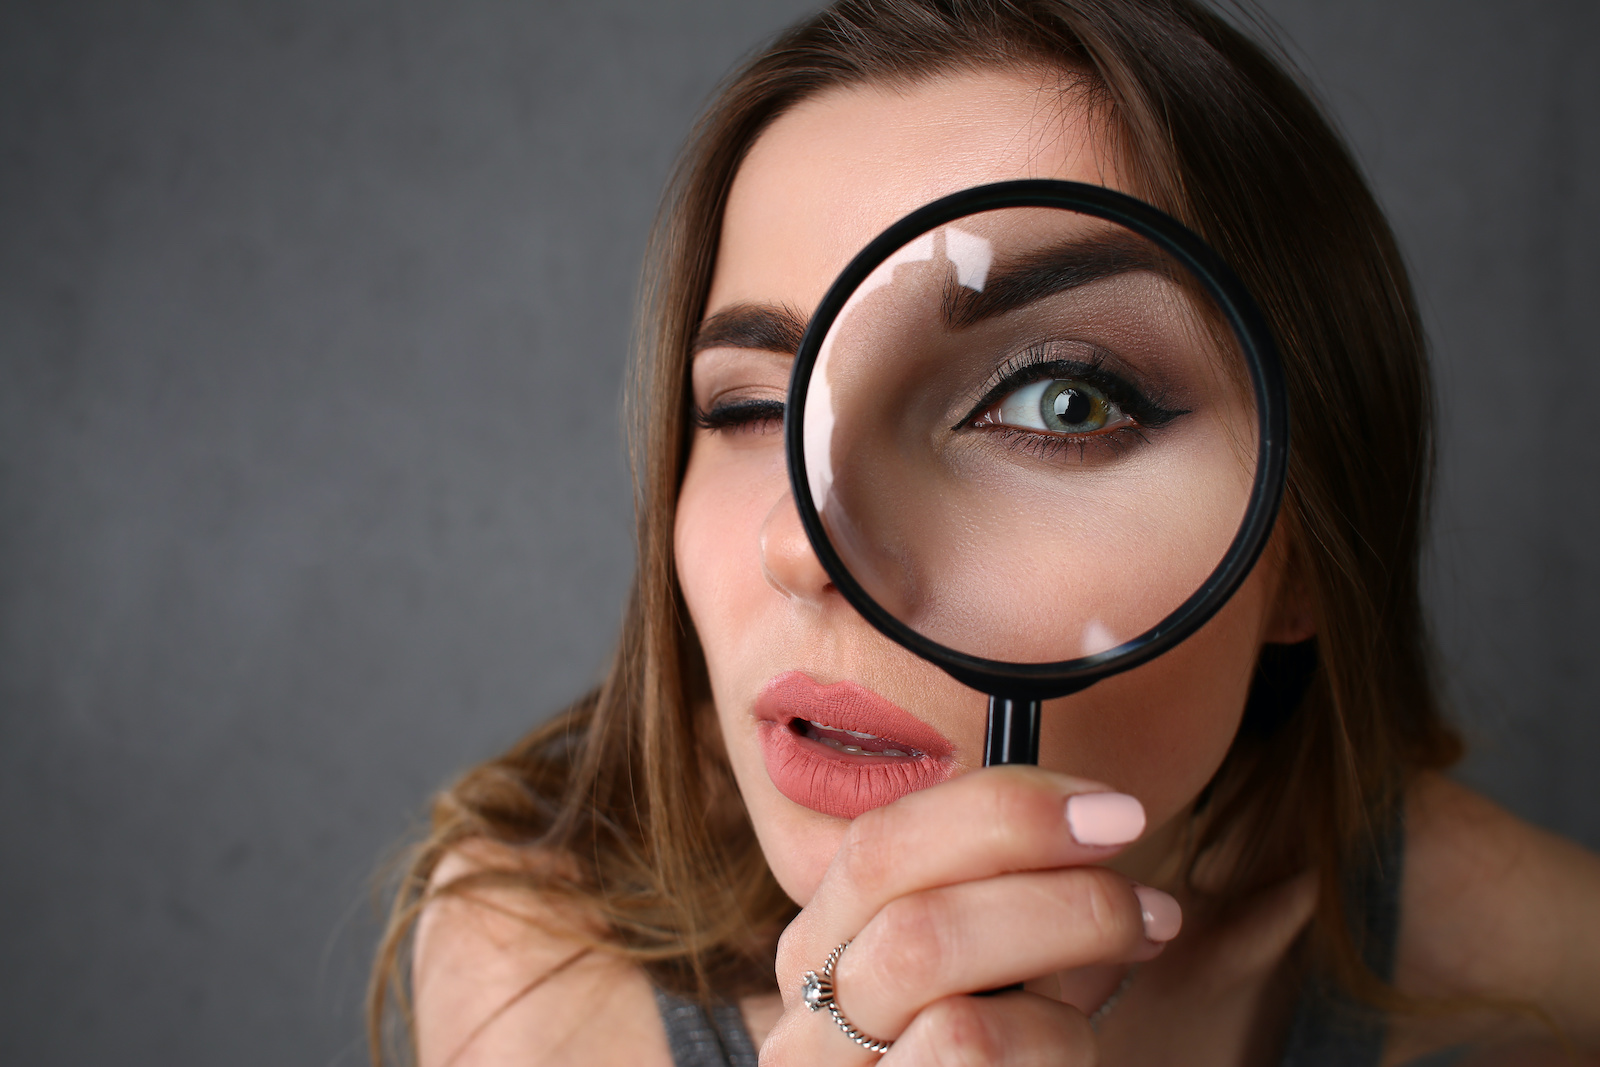 Soft credit check: A woman inspects something with a magnifying glass